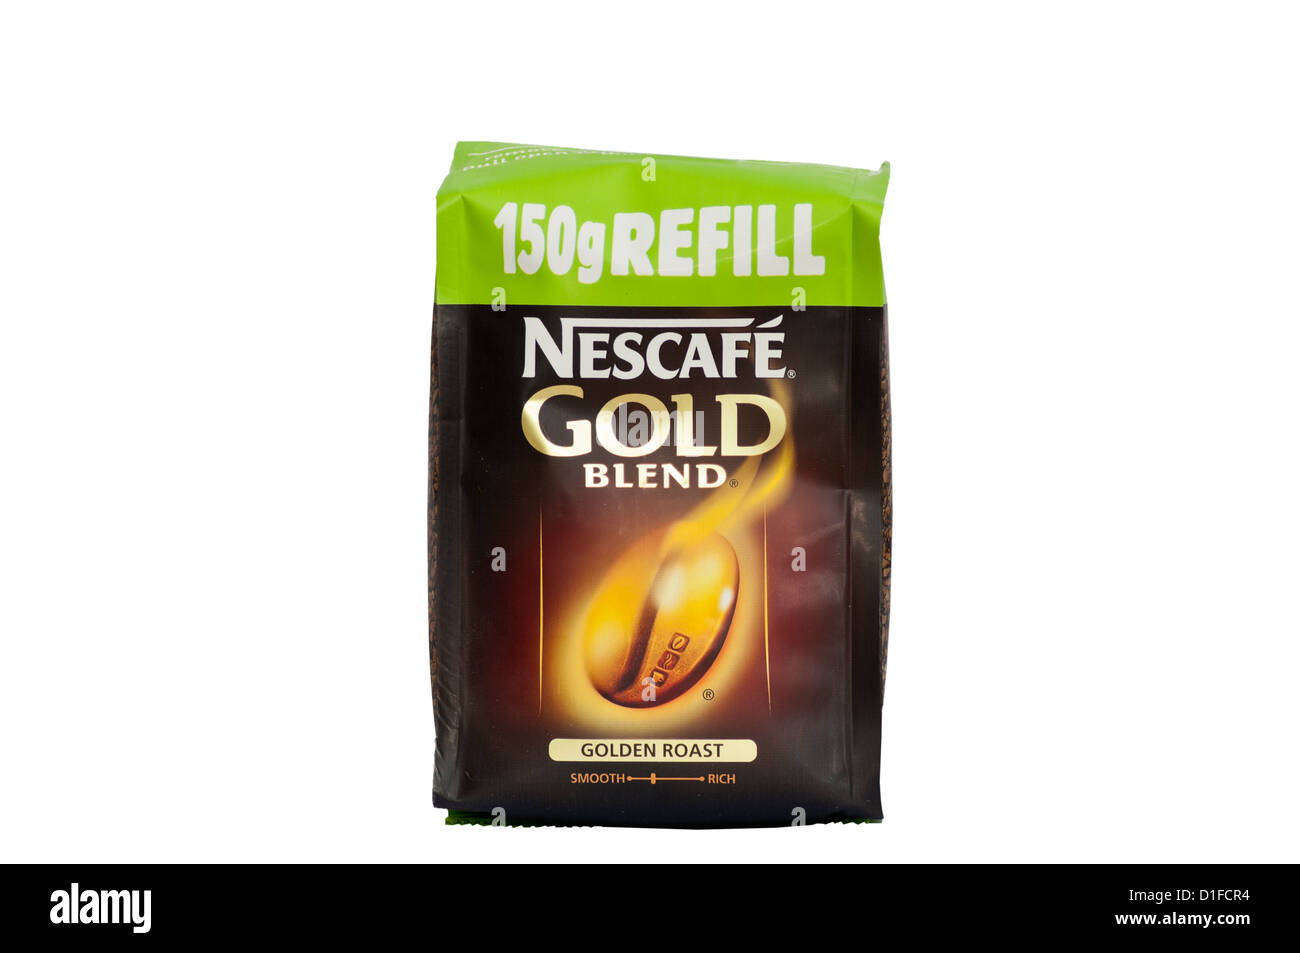 Packet Of Nescafe Gold Blend Coffee Refill - Stock Image